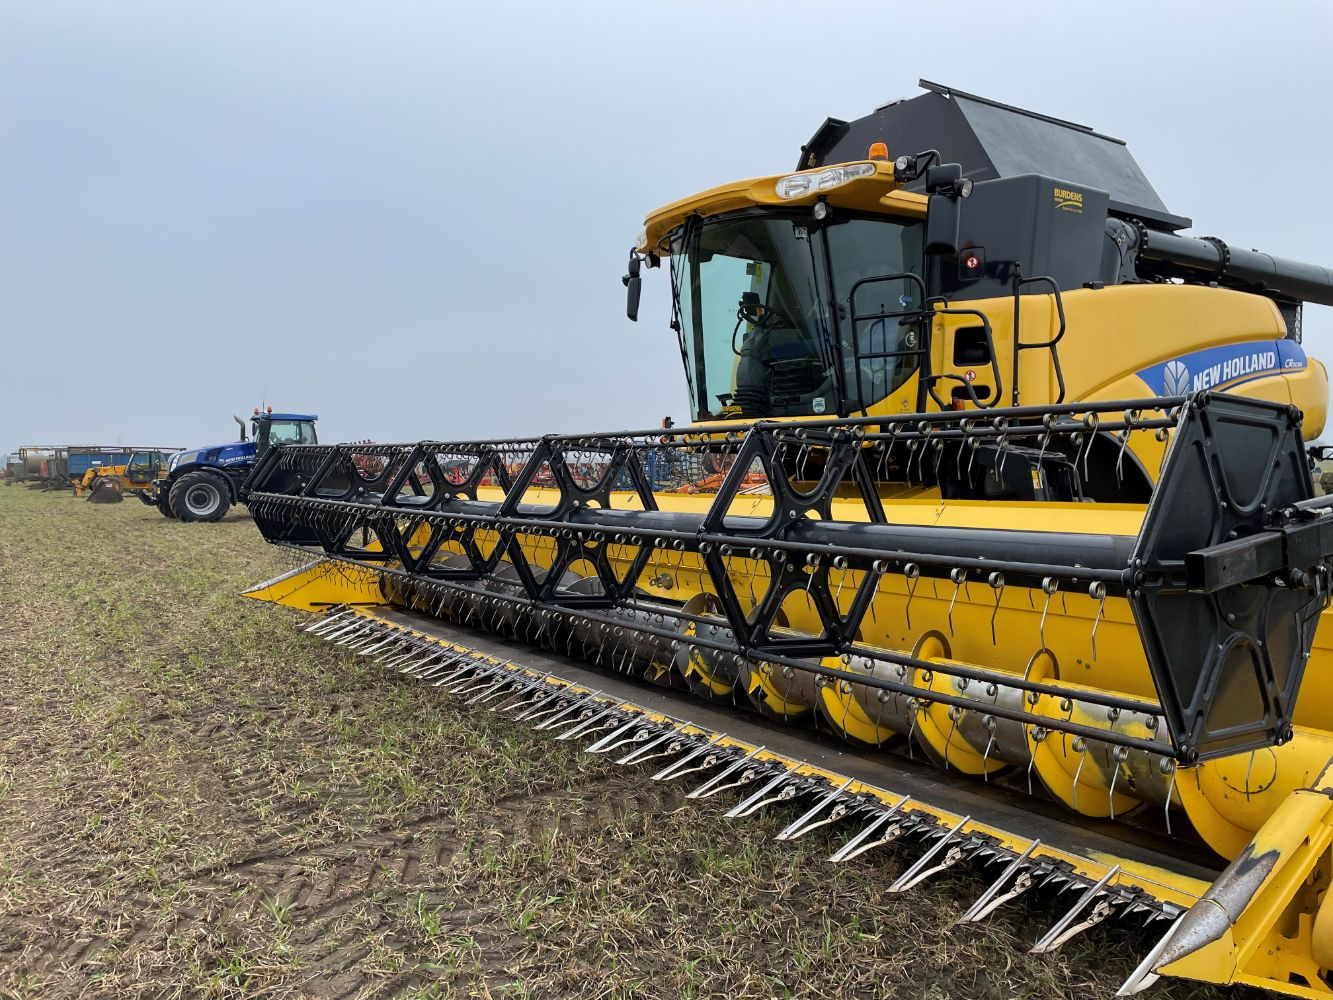 Sale by Online Timed Auction of Modern Farm Machinery, Implements and Equipment